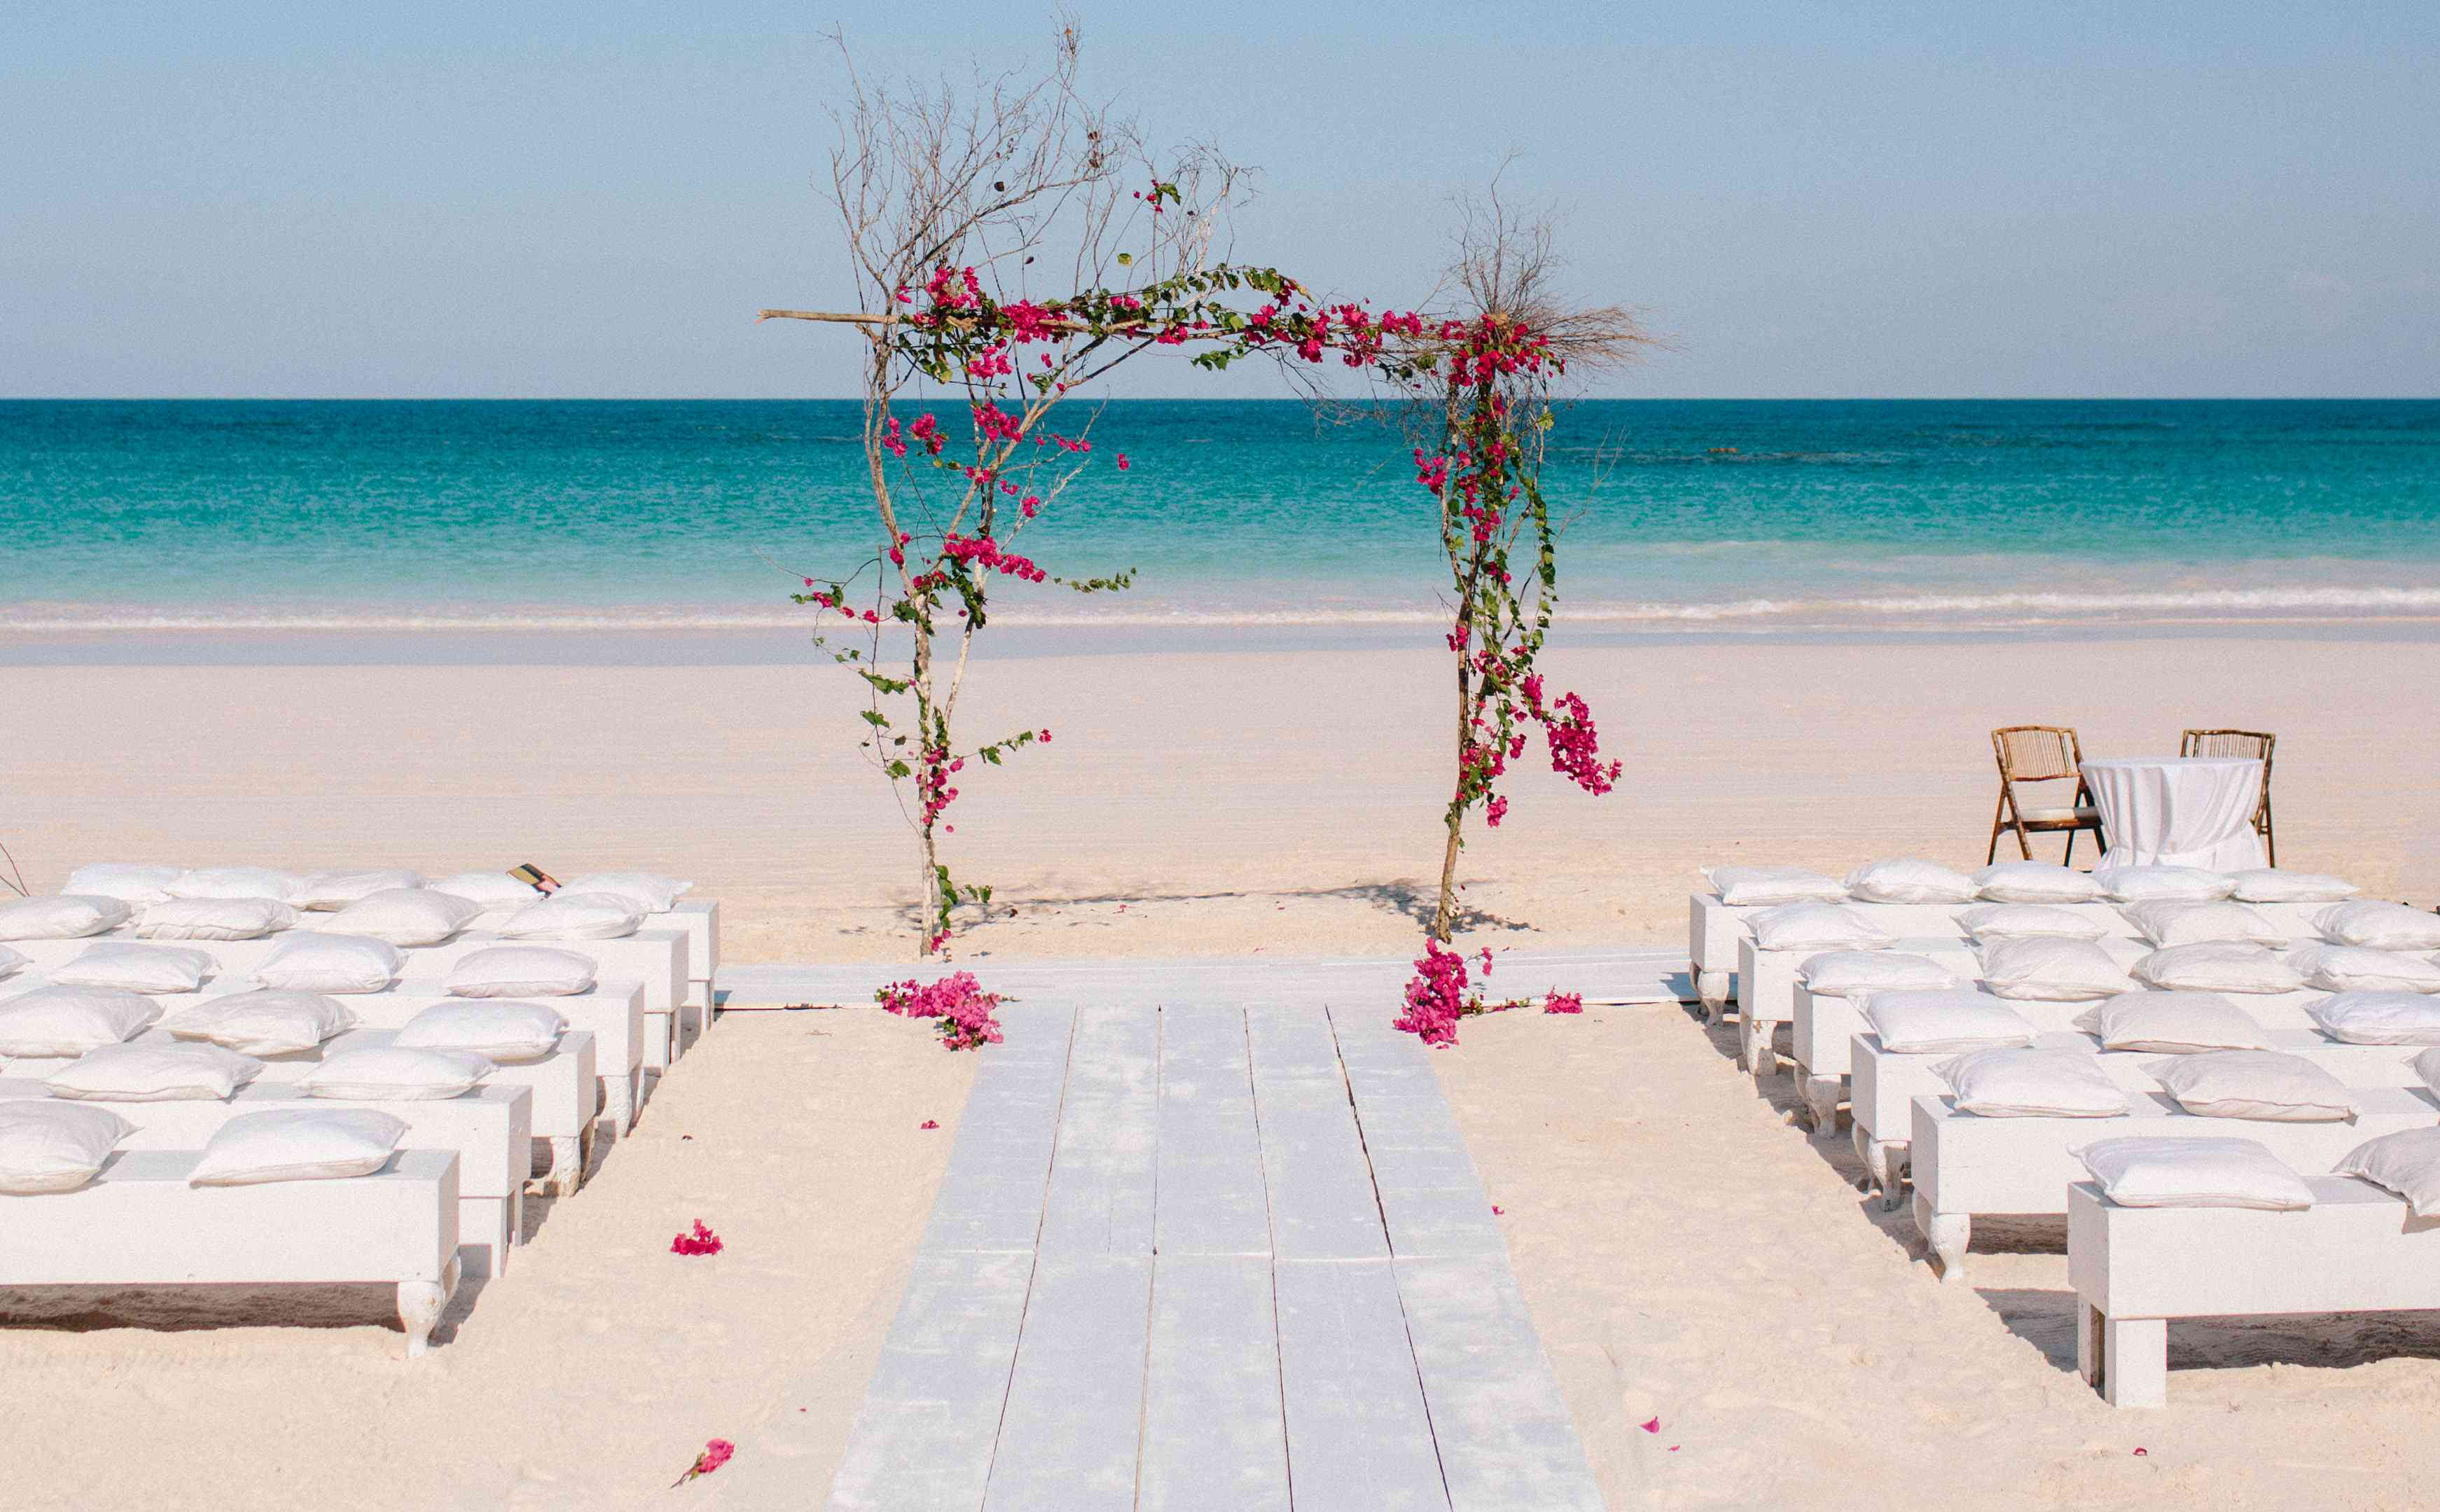 Beach wedding aisle with wooden planks to make boardwalk on sand